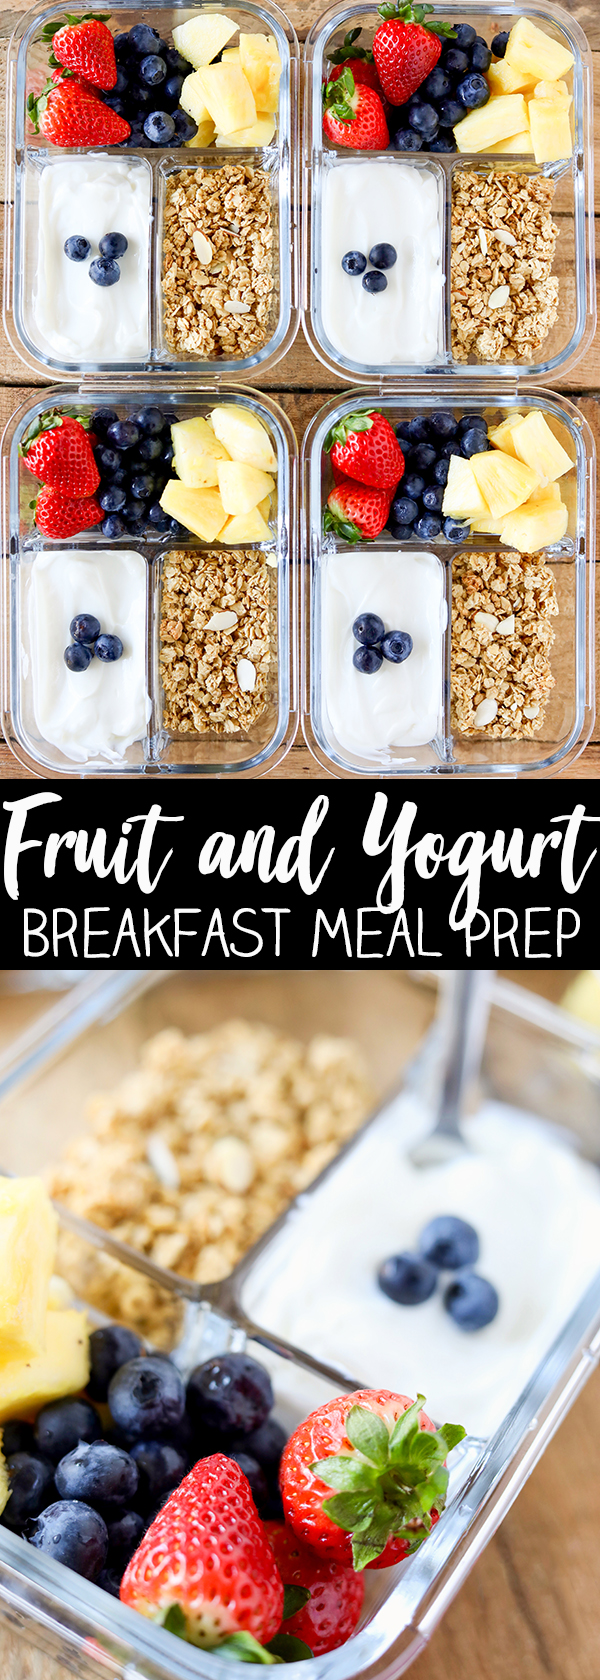 Breakfast Meal Prep is the best way to get your morning and week off a to a healthy start! Packed with protein, fresh fruit and a sprinkle of low-fat granola, these Fruit and Yogurt Bistro Boxes are a fresh idea for busy mornings. #breakfast #healthy #healthyrecipes #healthyeating More family favorite recipes on number-2-pencil.com. #familyfavorites